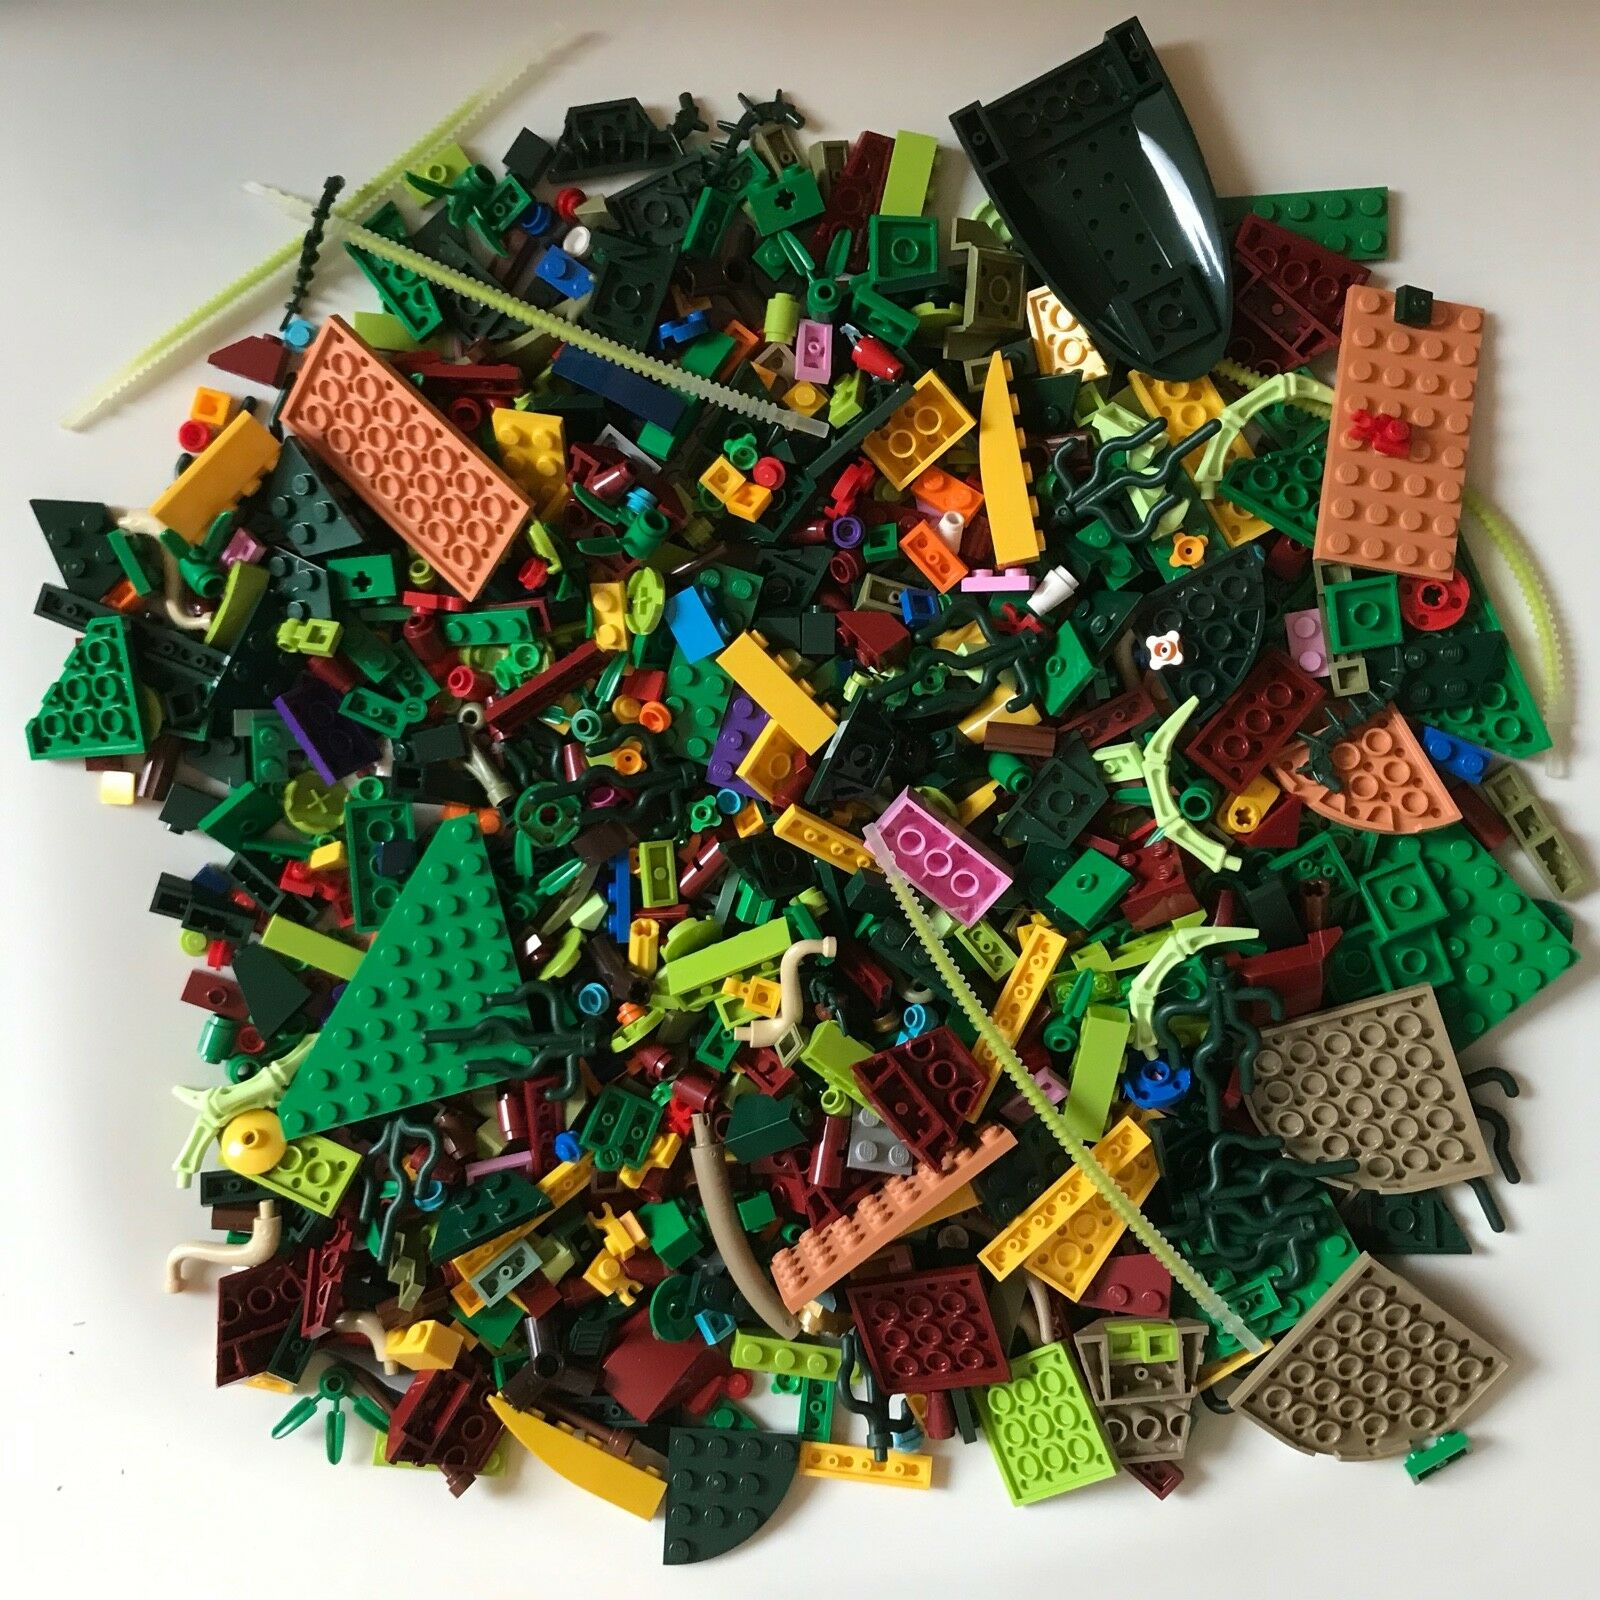 Over 1000 LEGO parts - FLOWERS PLATES PLANT multicolour - TO BUILD LEGO GARDEN